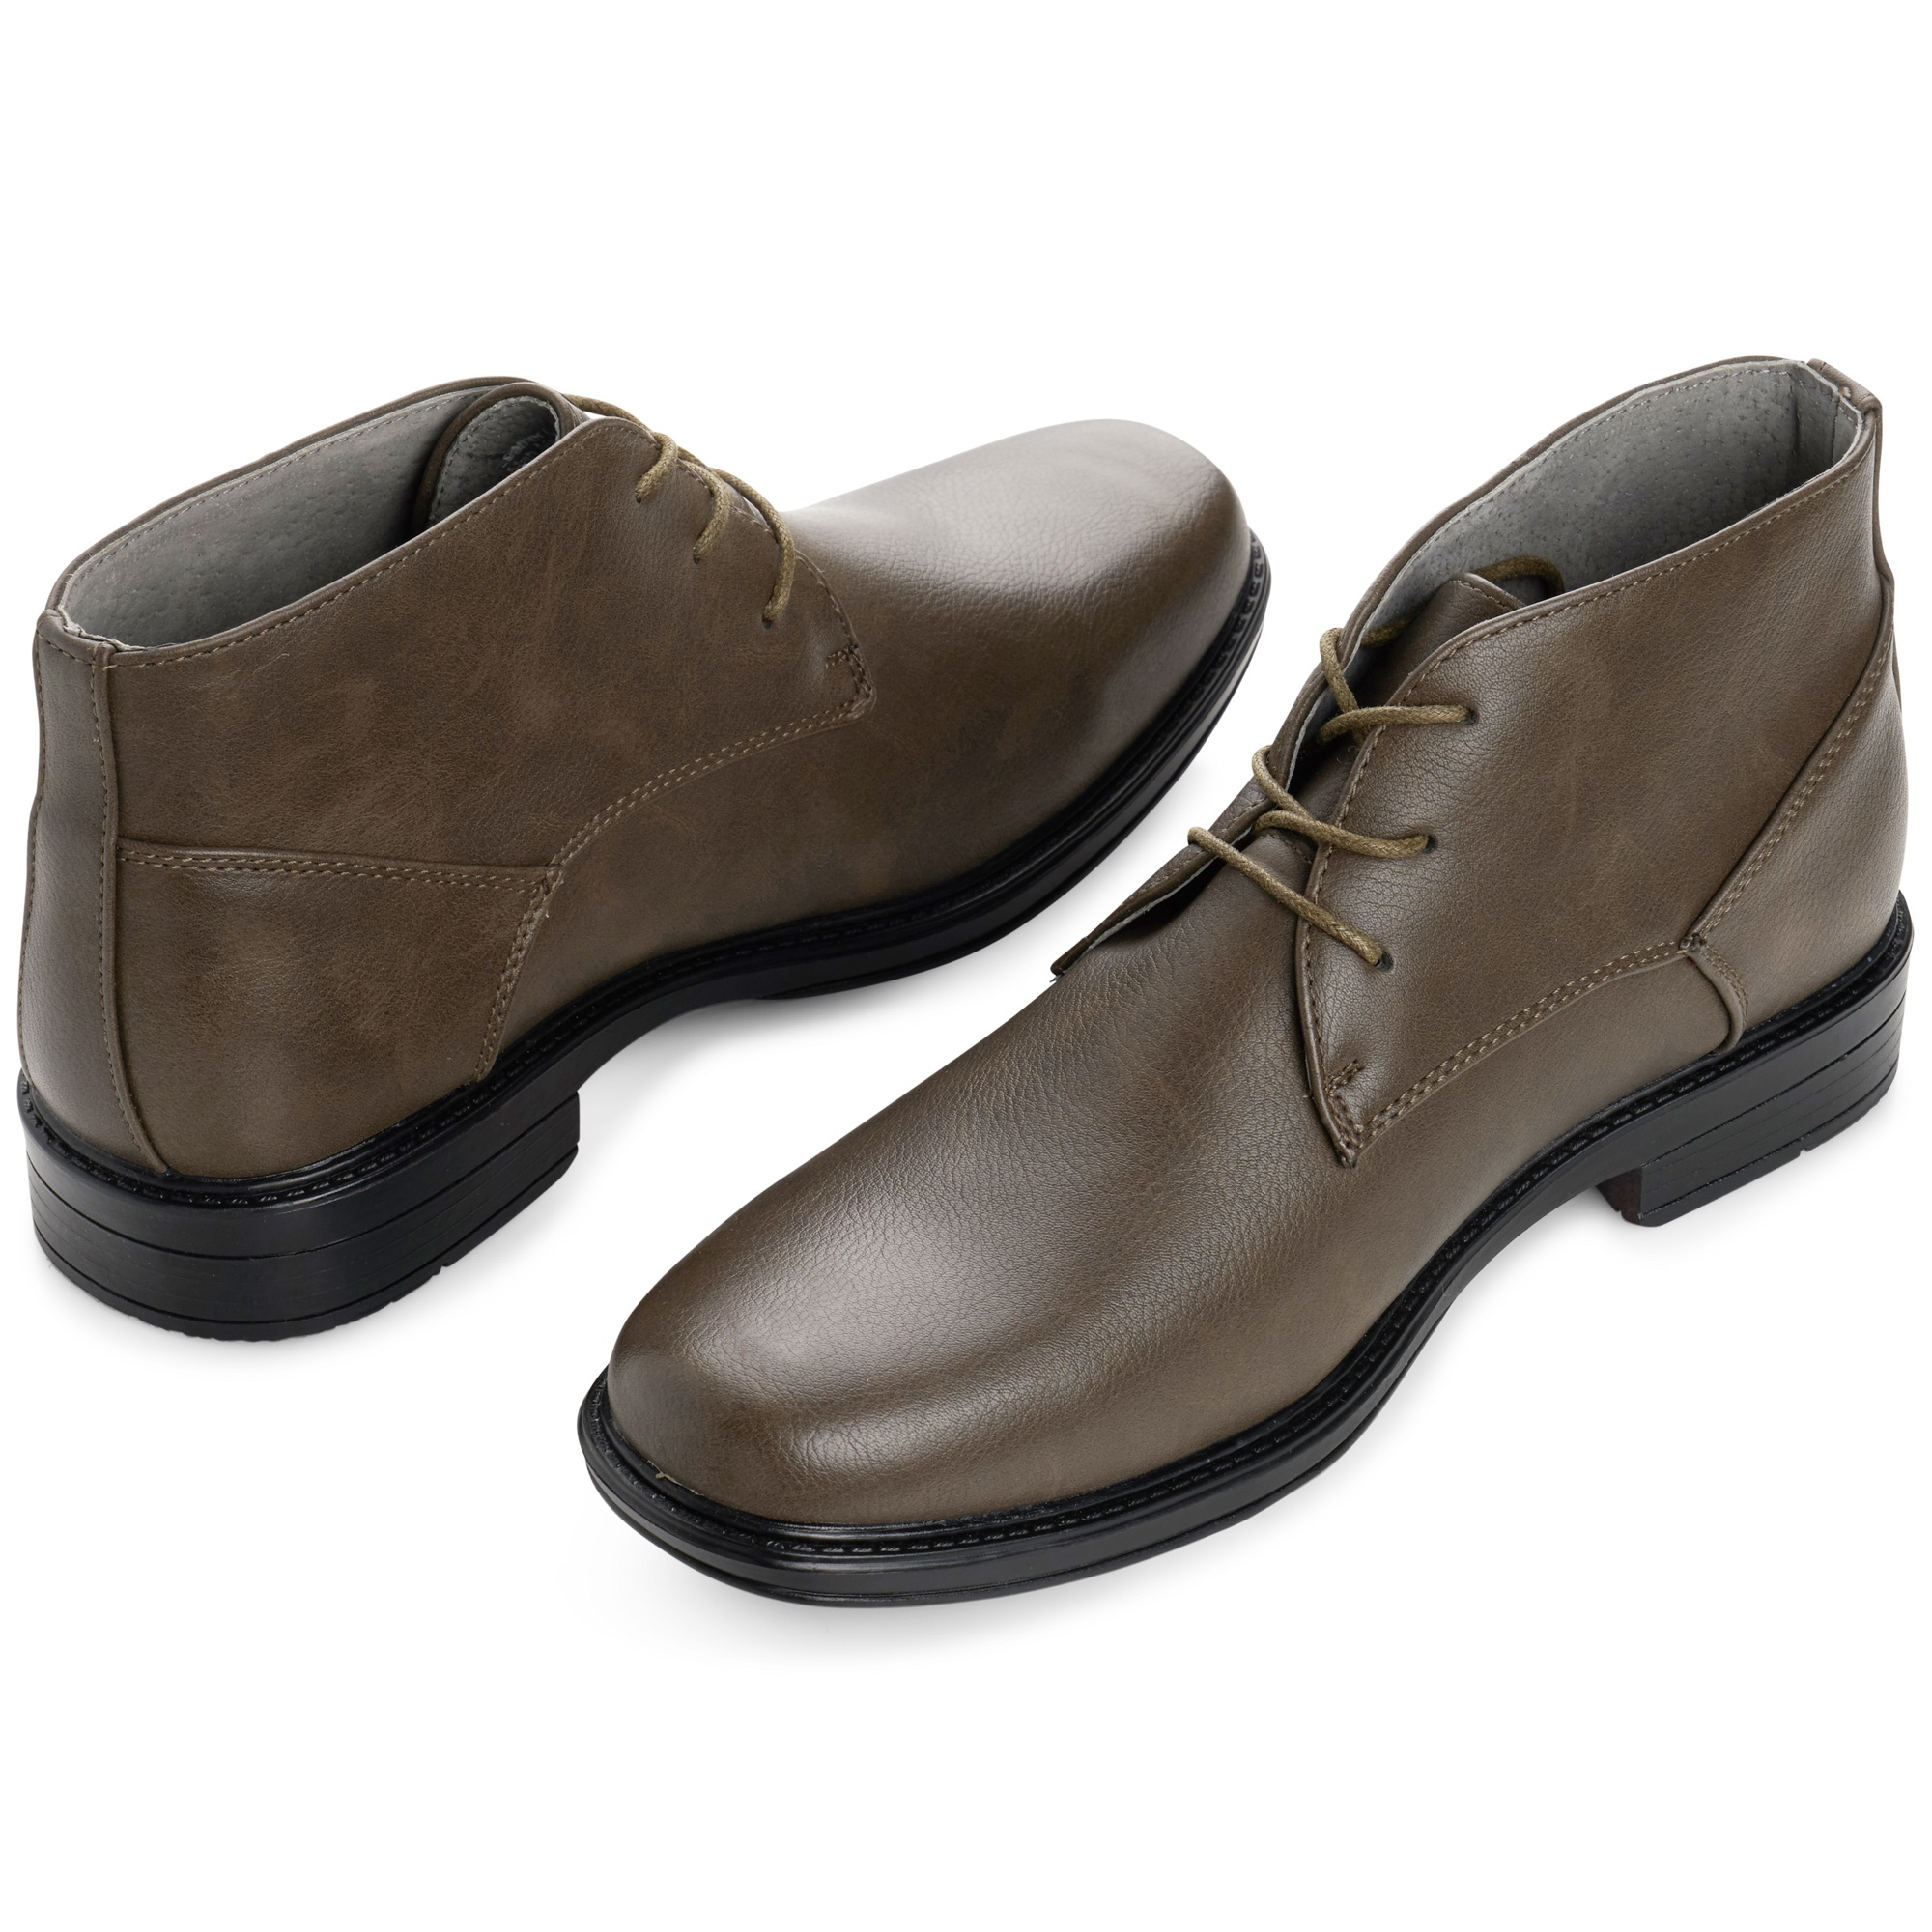 Alpine-Swiss-Mens-Ankle-Boots-Dressy-Casual-Leather-Lined-Dress-Shoes-Lace-up-NW miniature 29